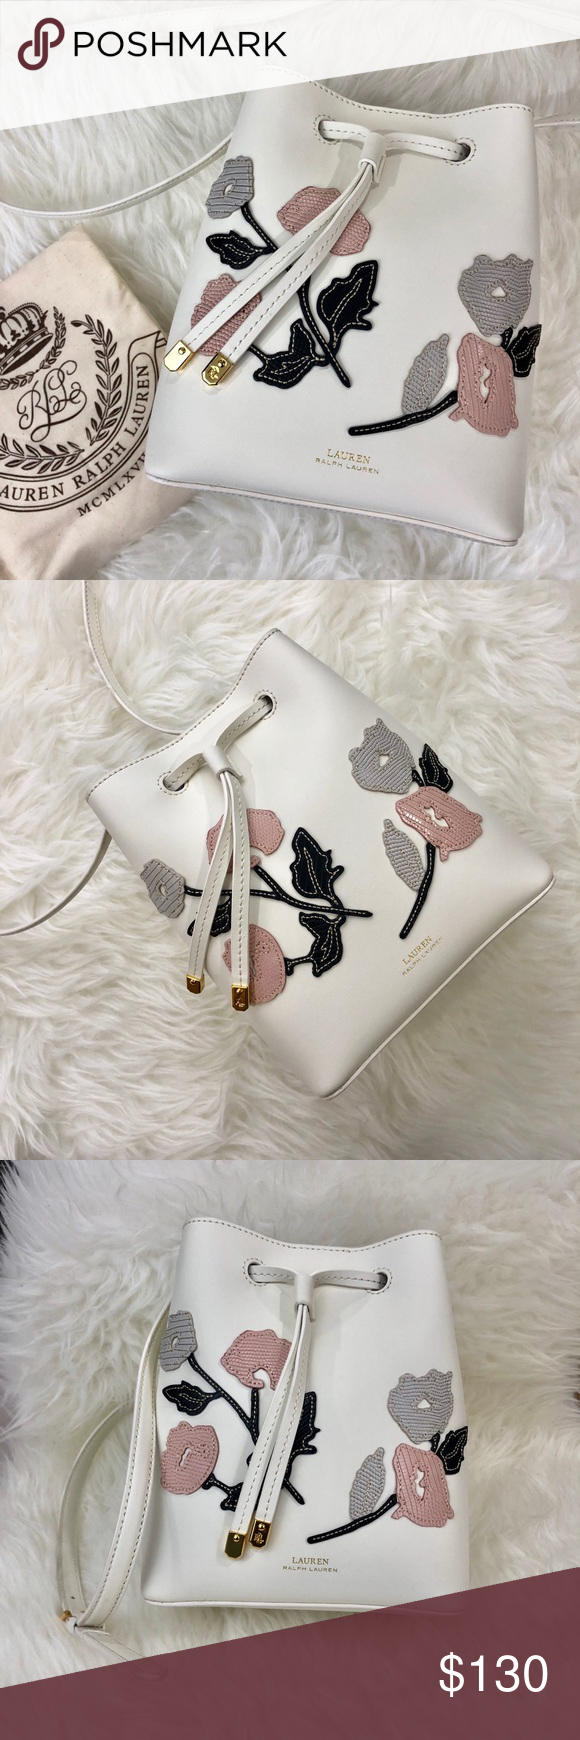 dd55806ed30 Includes dust bag and the strap is adjustable. Off white color. Lauren  Ralph Lauren Bags